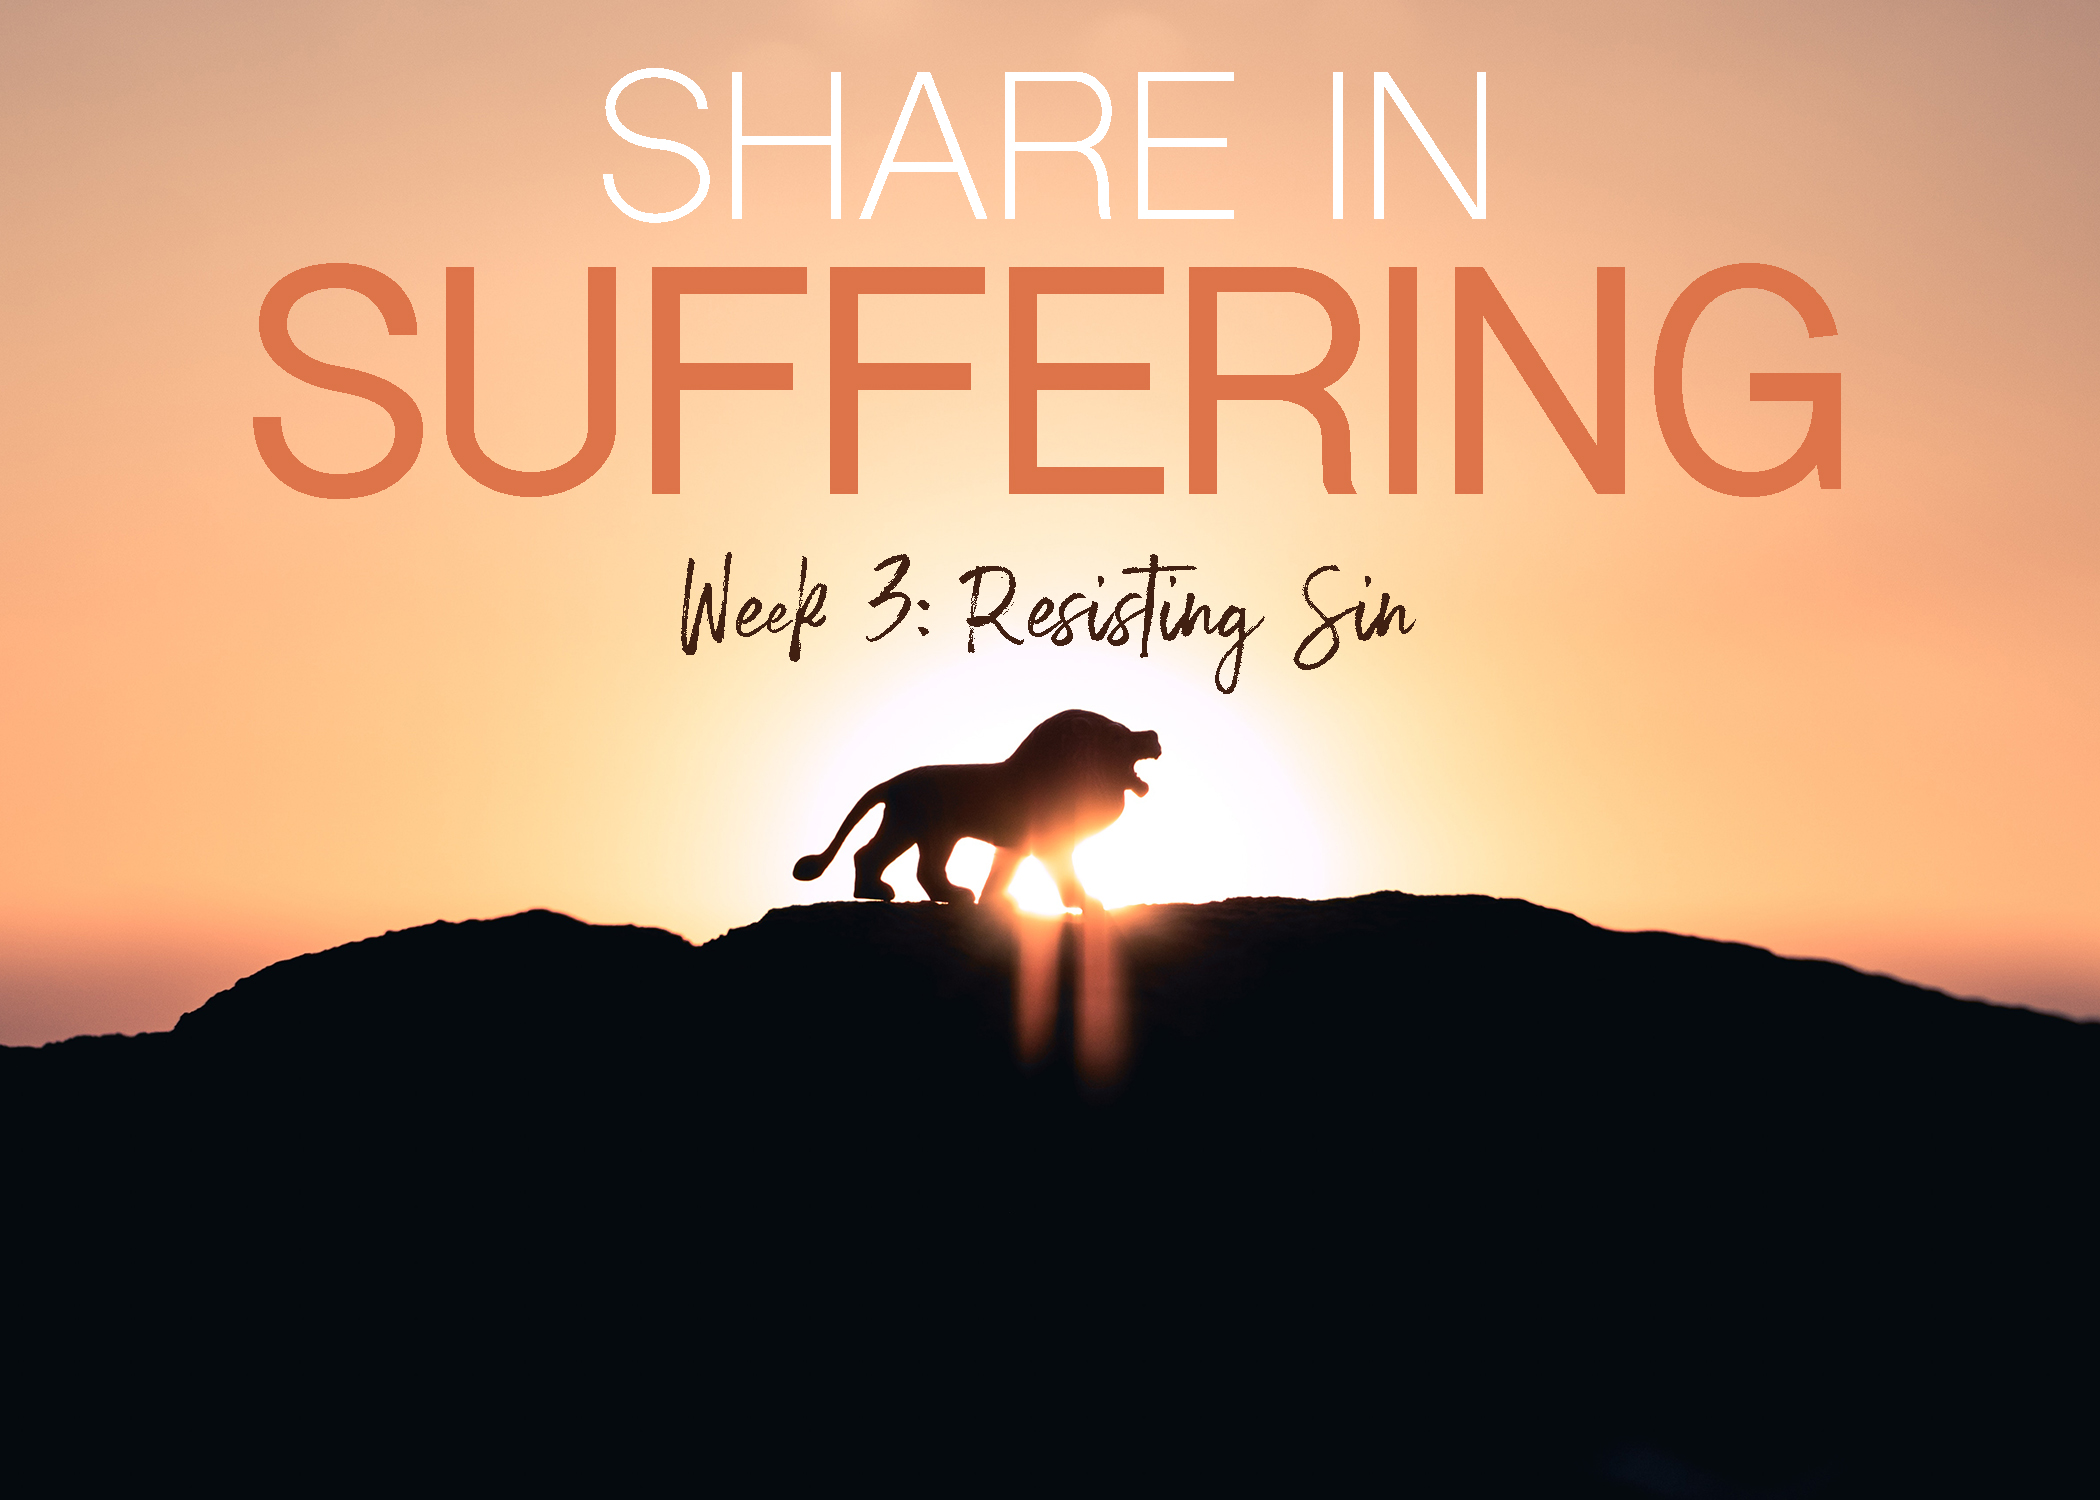 Share in Suffering Week 3.jpg